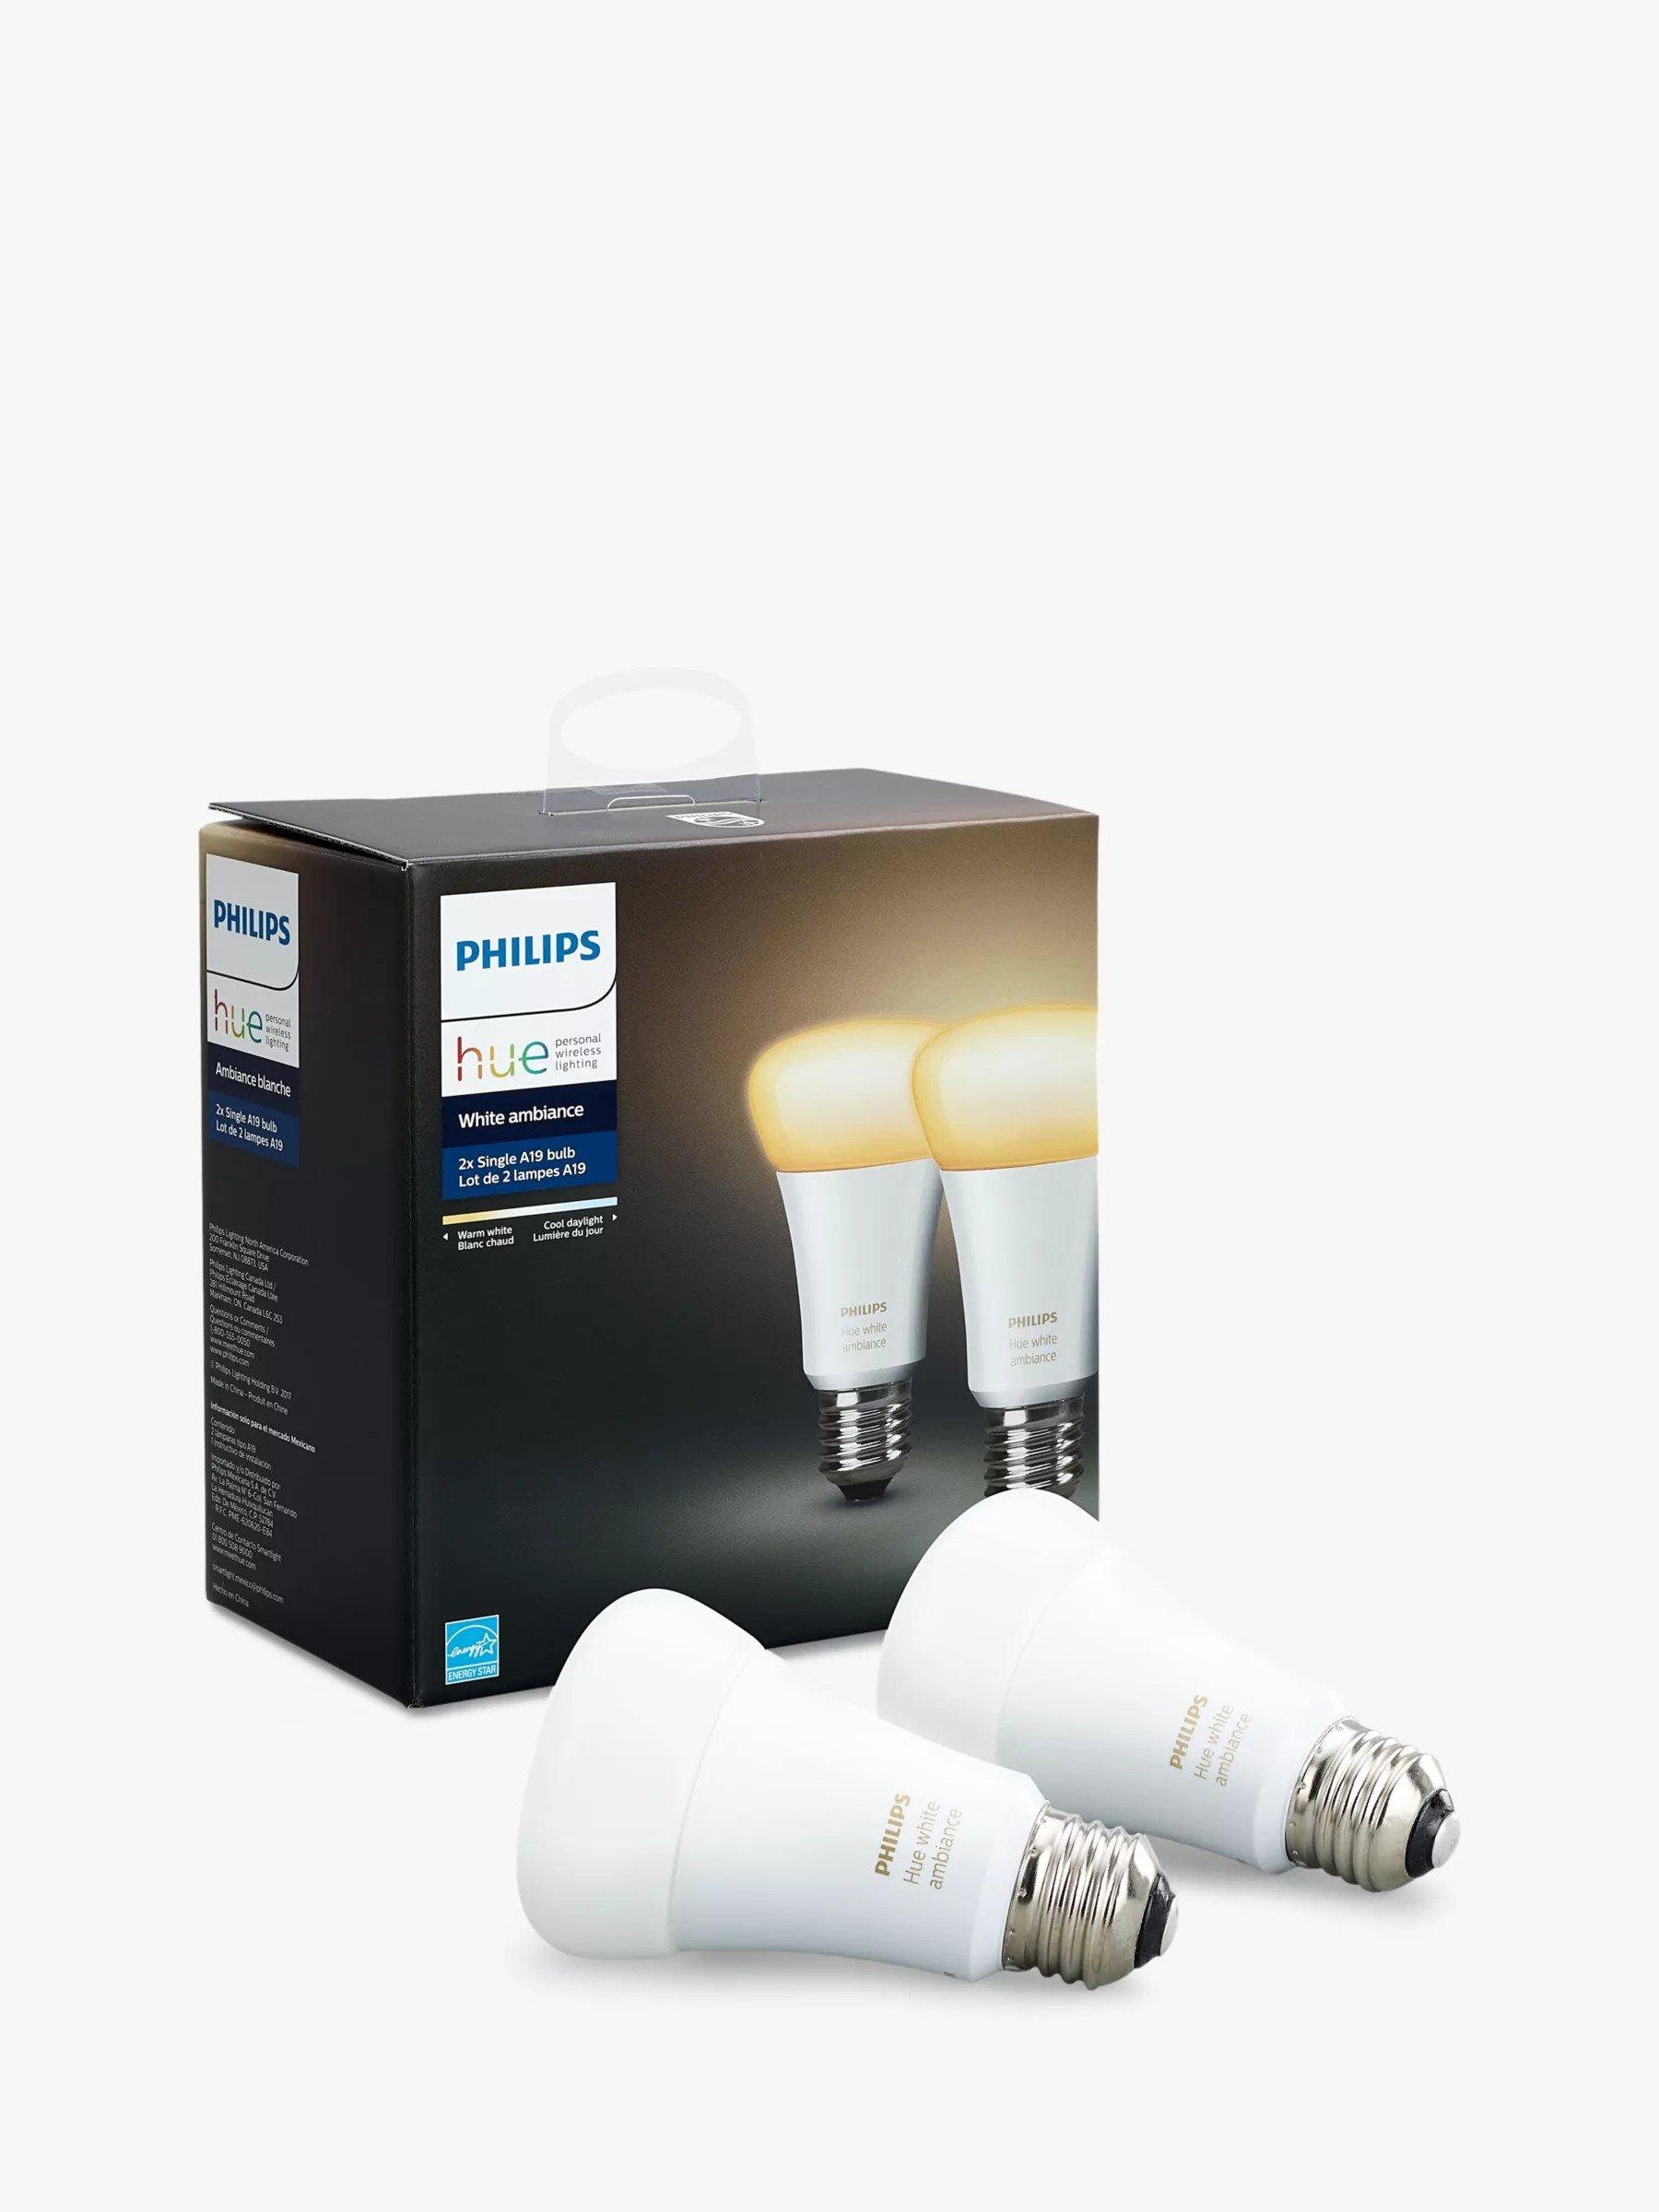 Philips Hue Starter Kit E27 Philips Hue White Ambiance Wireless Lighting Led Light Bulb 9 5w